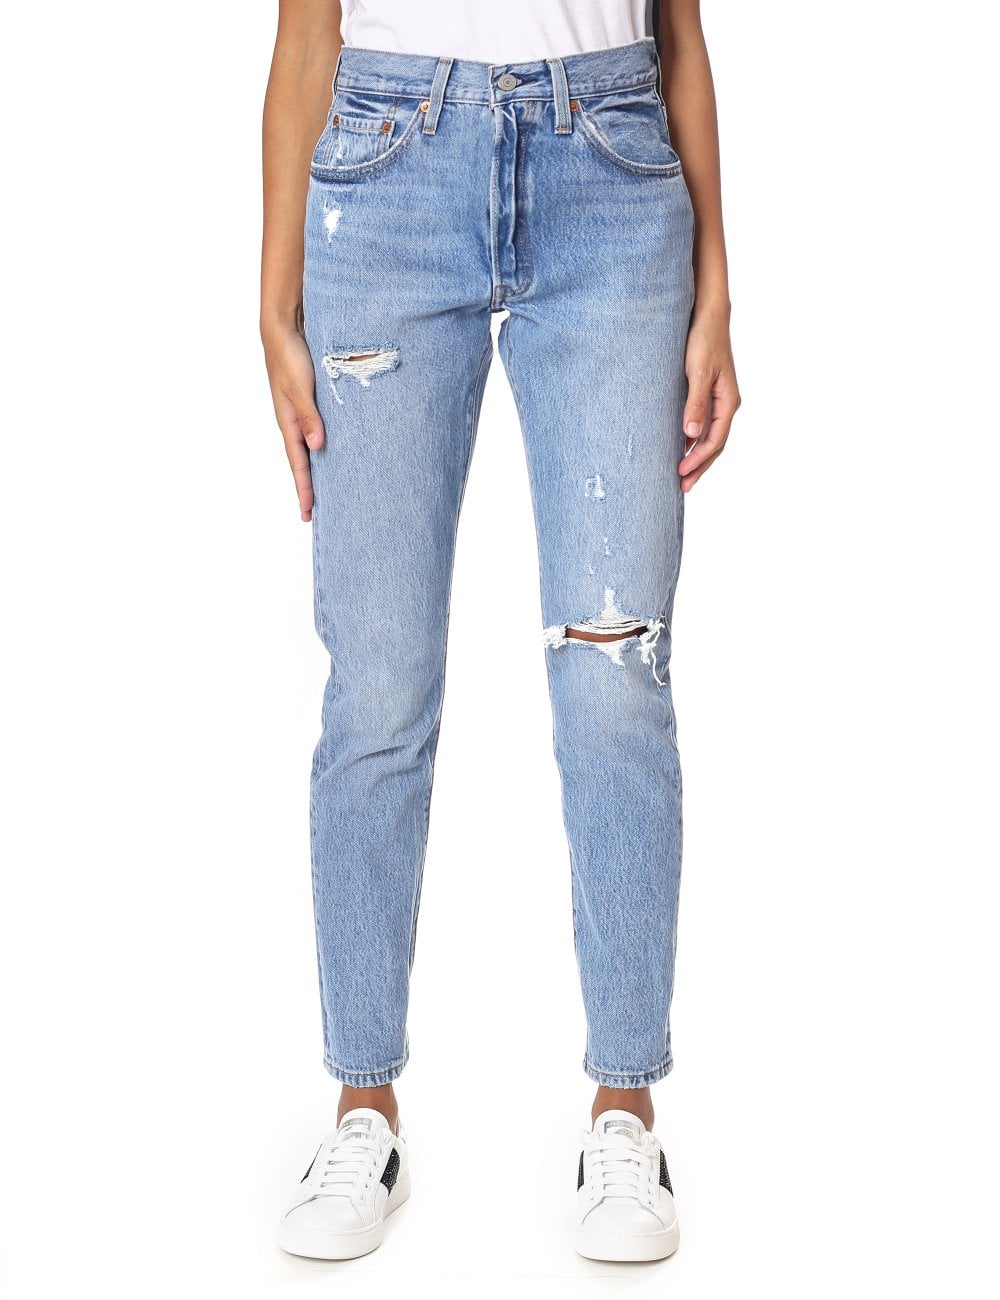 Which Vintage Levi's Jeans Cut Is the Most Flattering for ... |Levis Jeans For Women